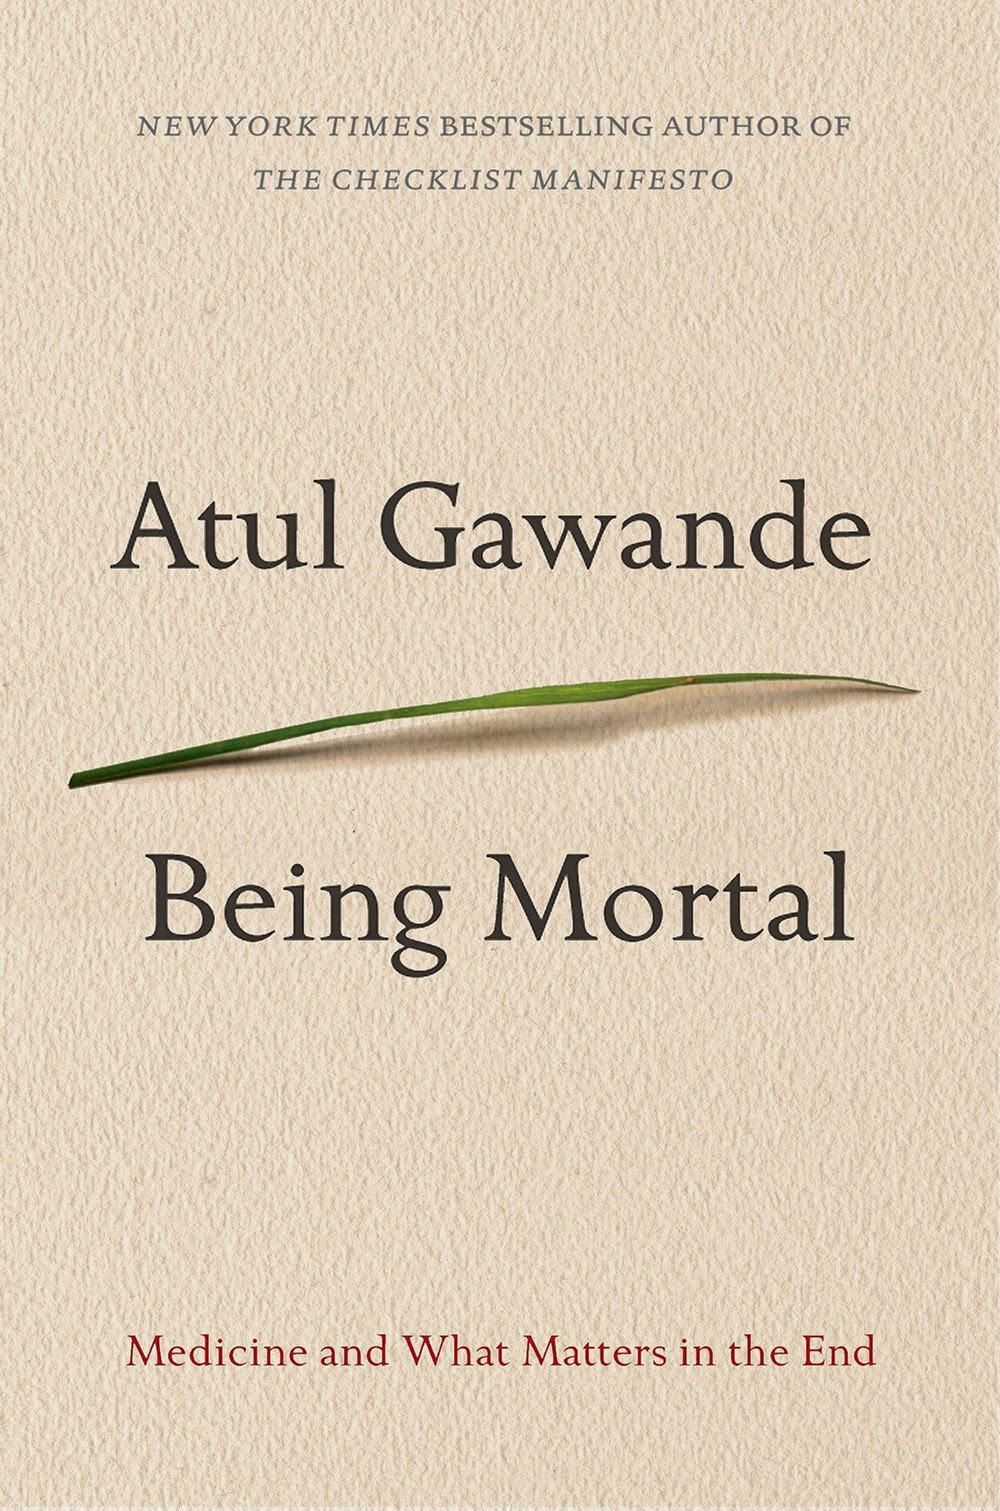 """being mortal"" - Atul Gawande"